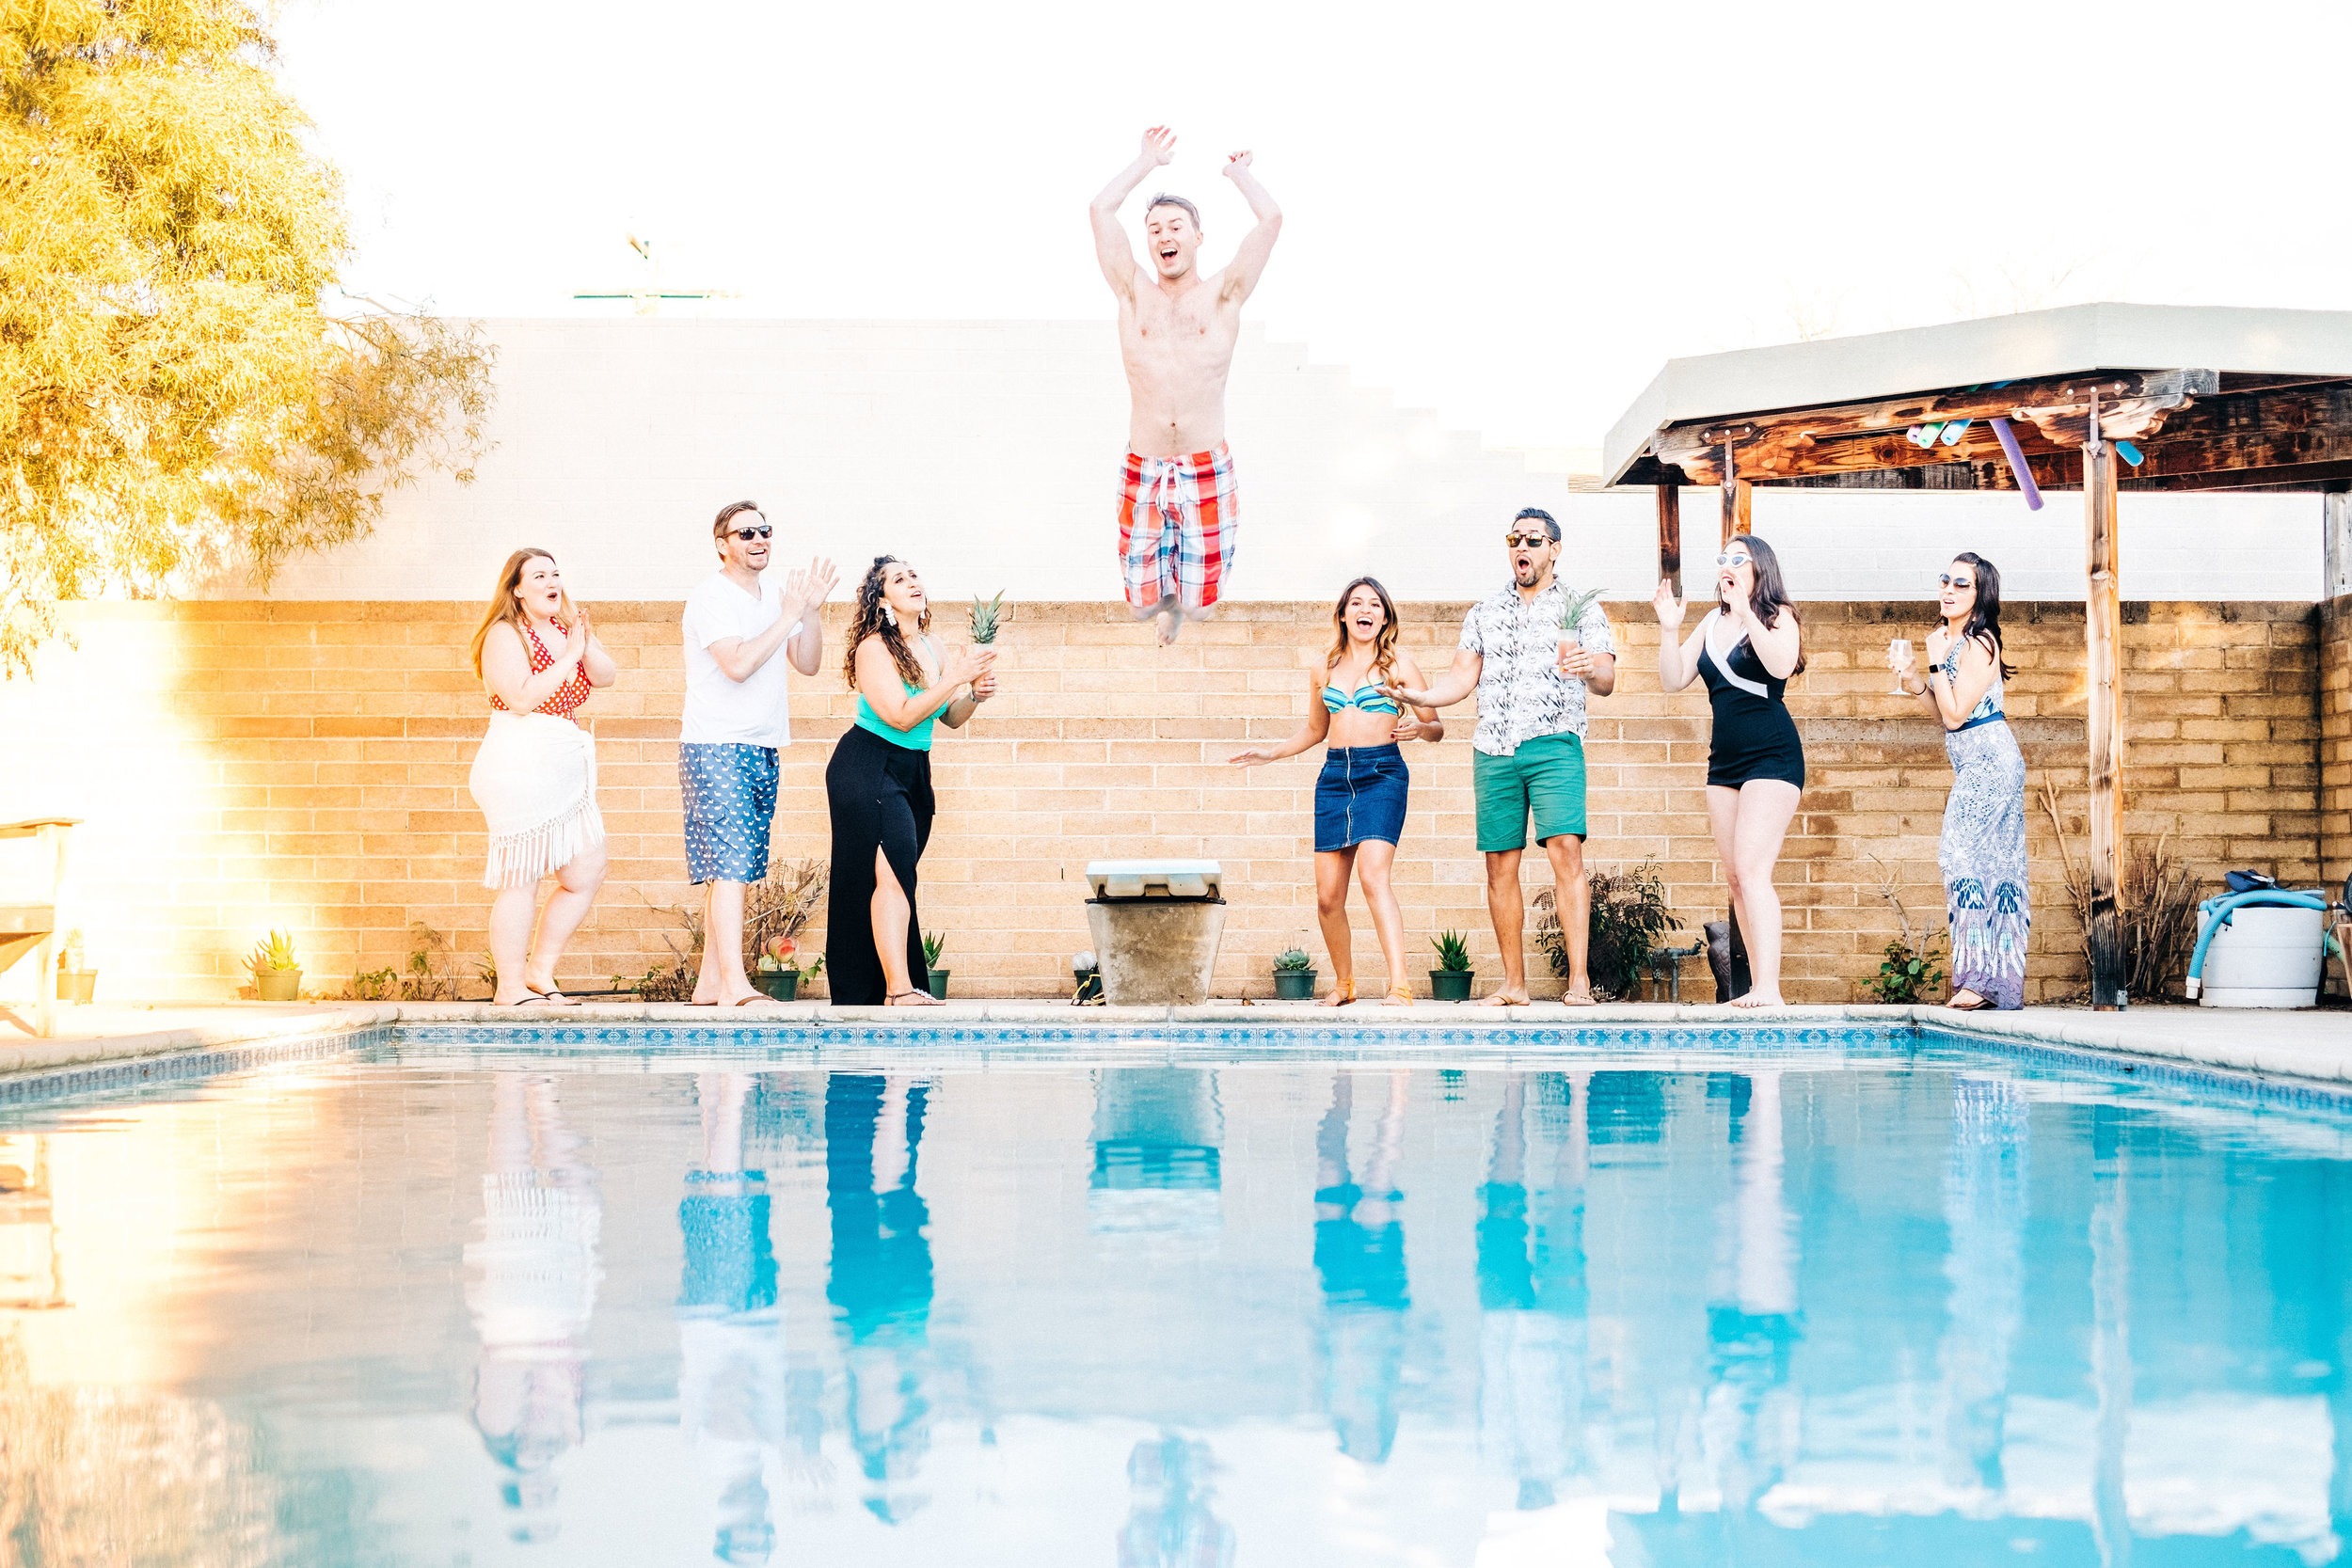 Andy-Shepard-Photography-Tucson-Pool-Party-97.jpg